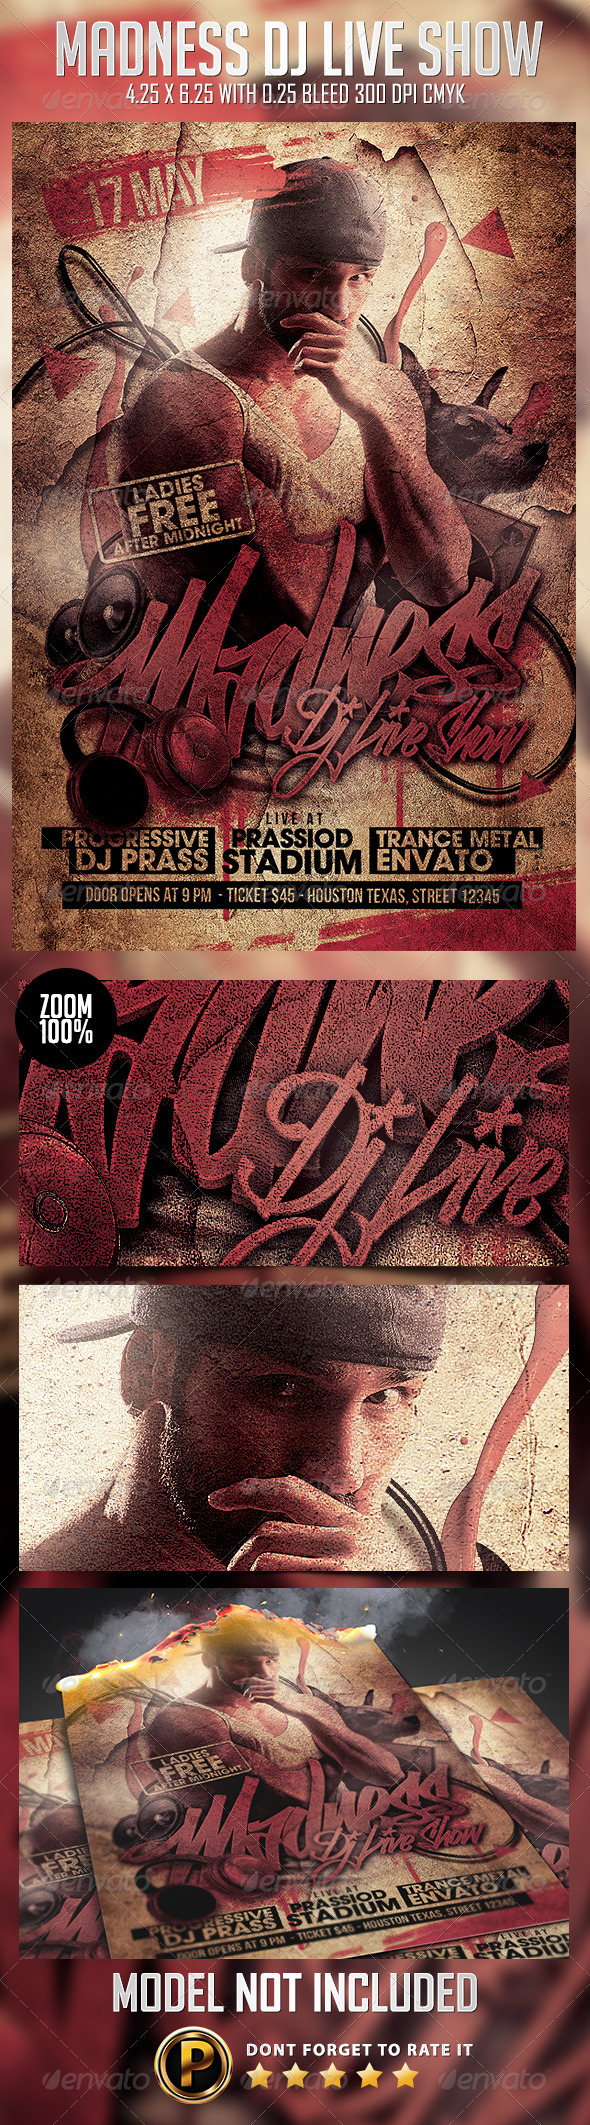 Madness Dj Live Show Flyer Template - Clubs & Parties Events